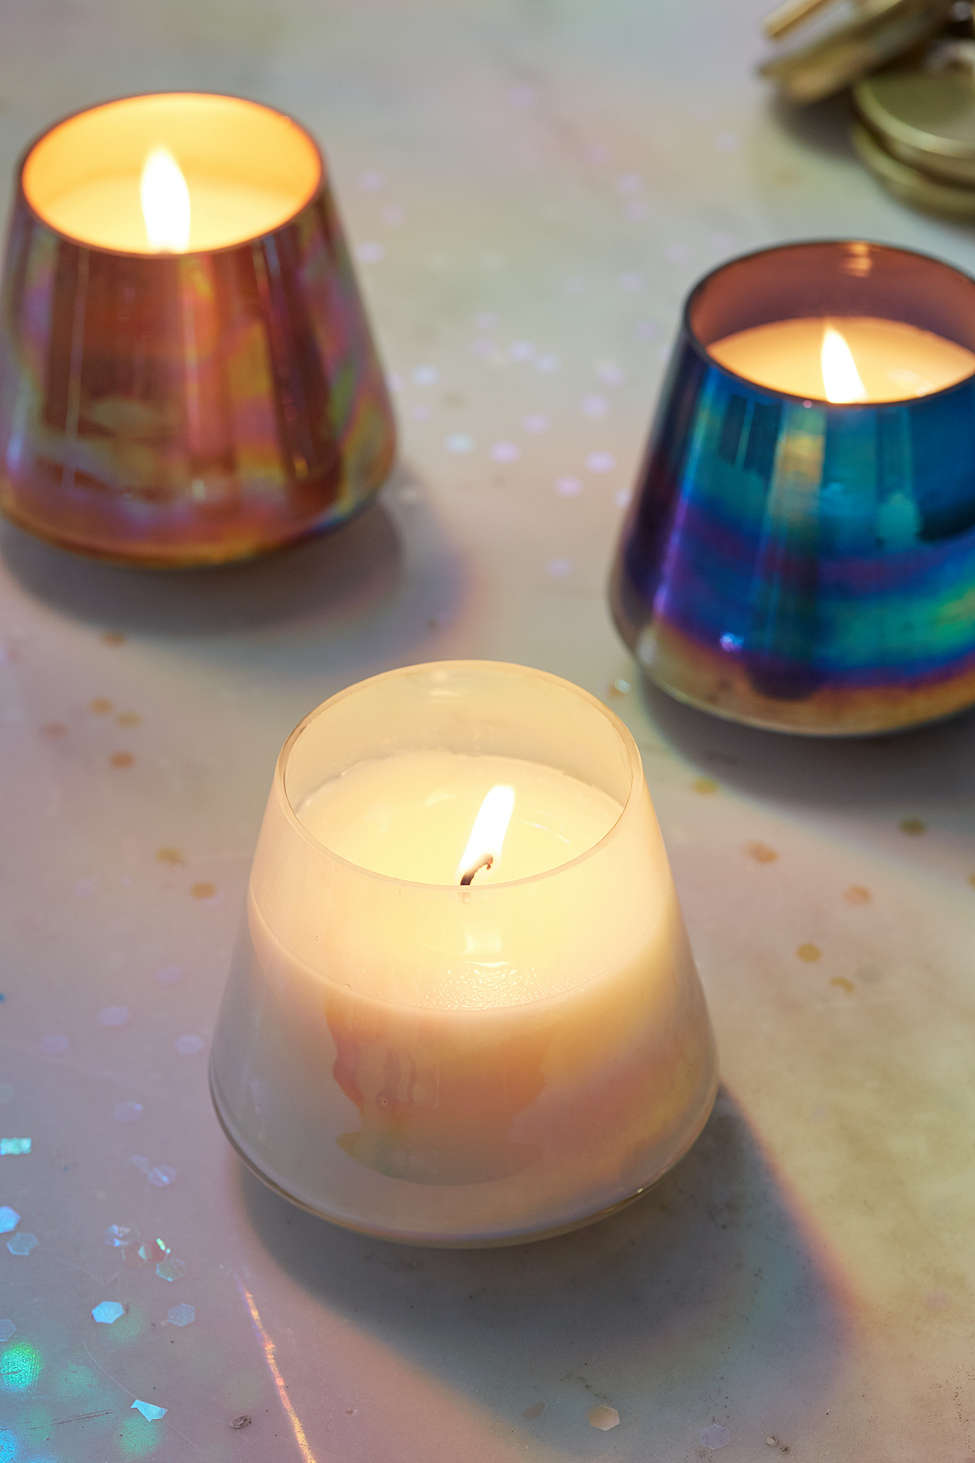 Iridescent candle holders from Urban Outfitters